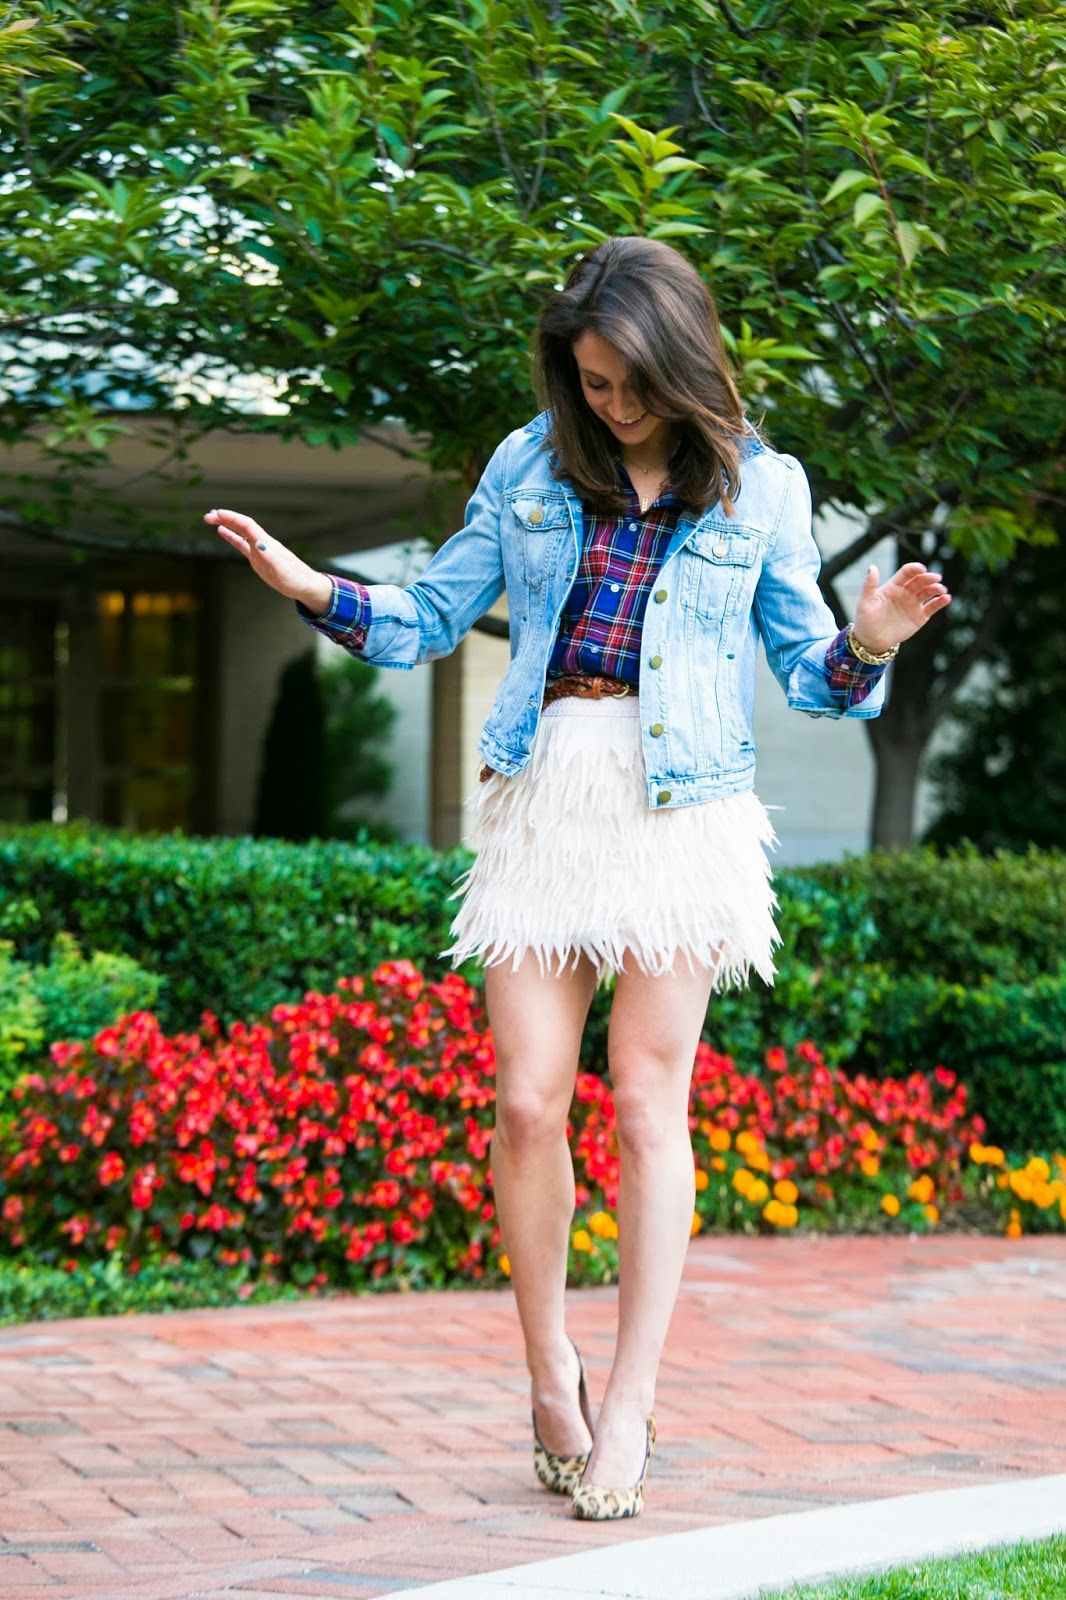 Dress up flannel shirt  This is a fun look  Great way to dress up a plaid shirt with